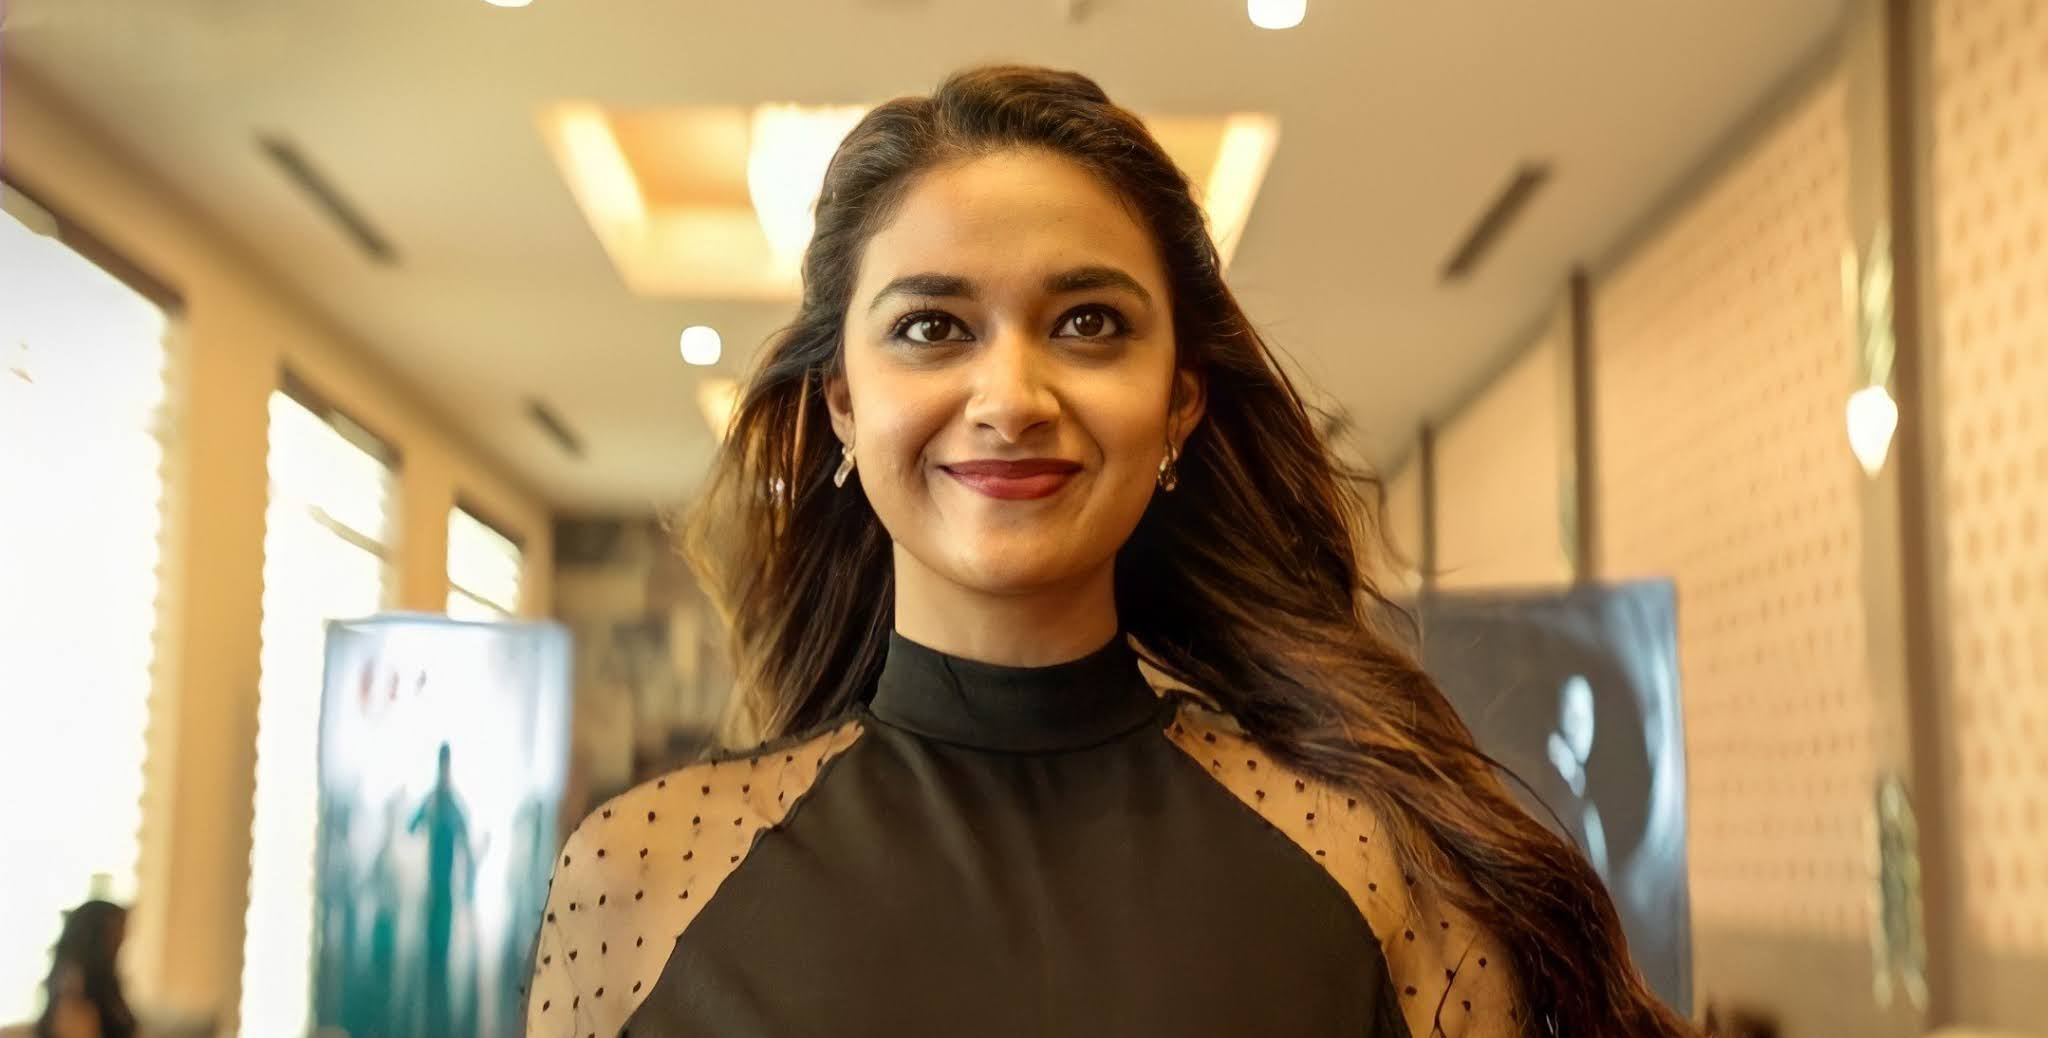 Keerthy Suresh in Black Lovely Smile from Miss India